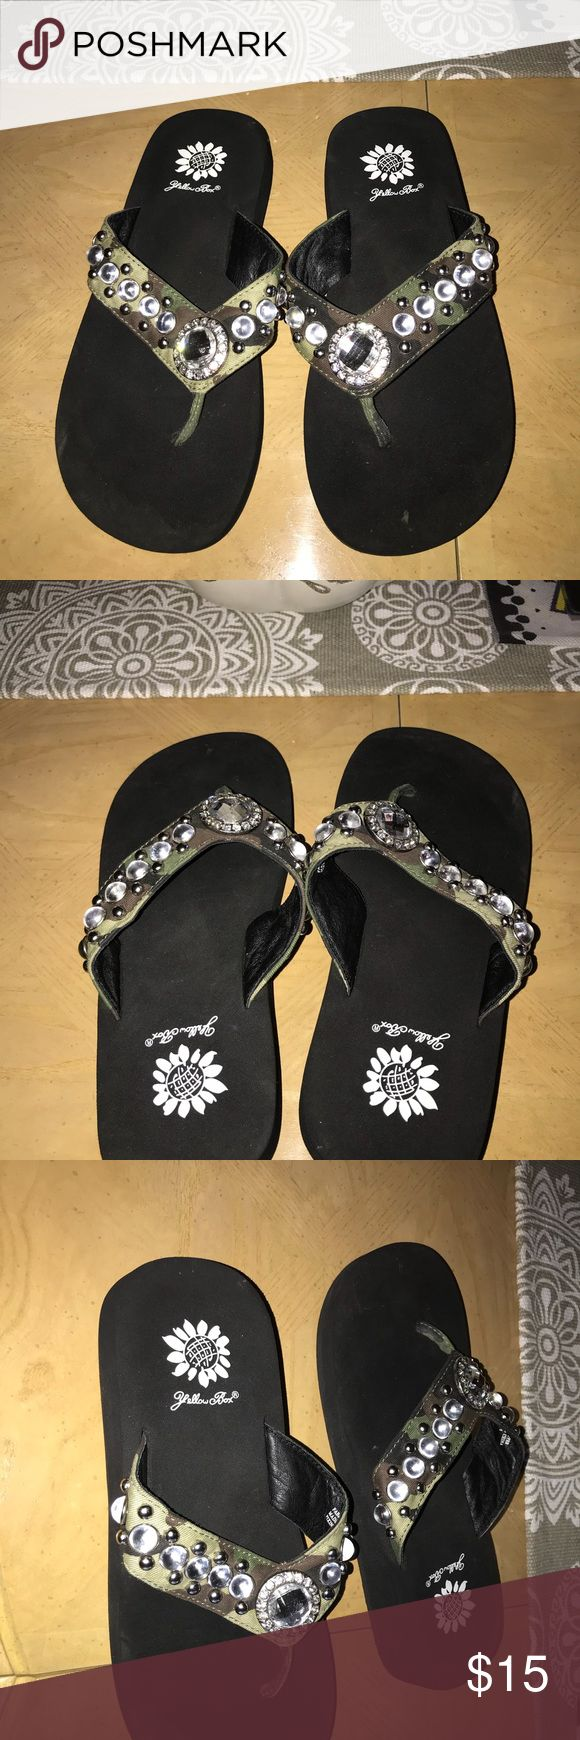 Yellow Box Camo Bling Flip Flops Excellent condition! Hardly worn. Very comfy! Yellow Box Shoes Sandals